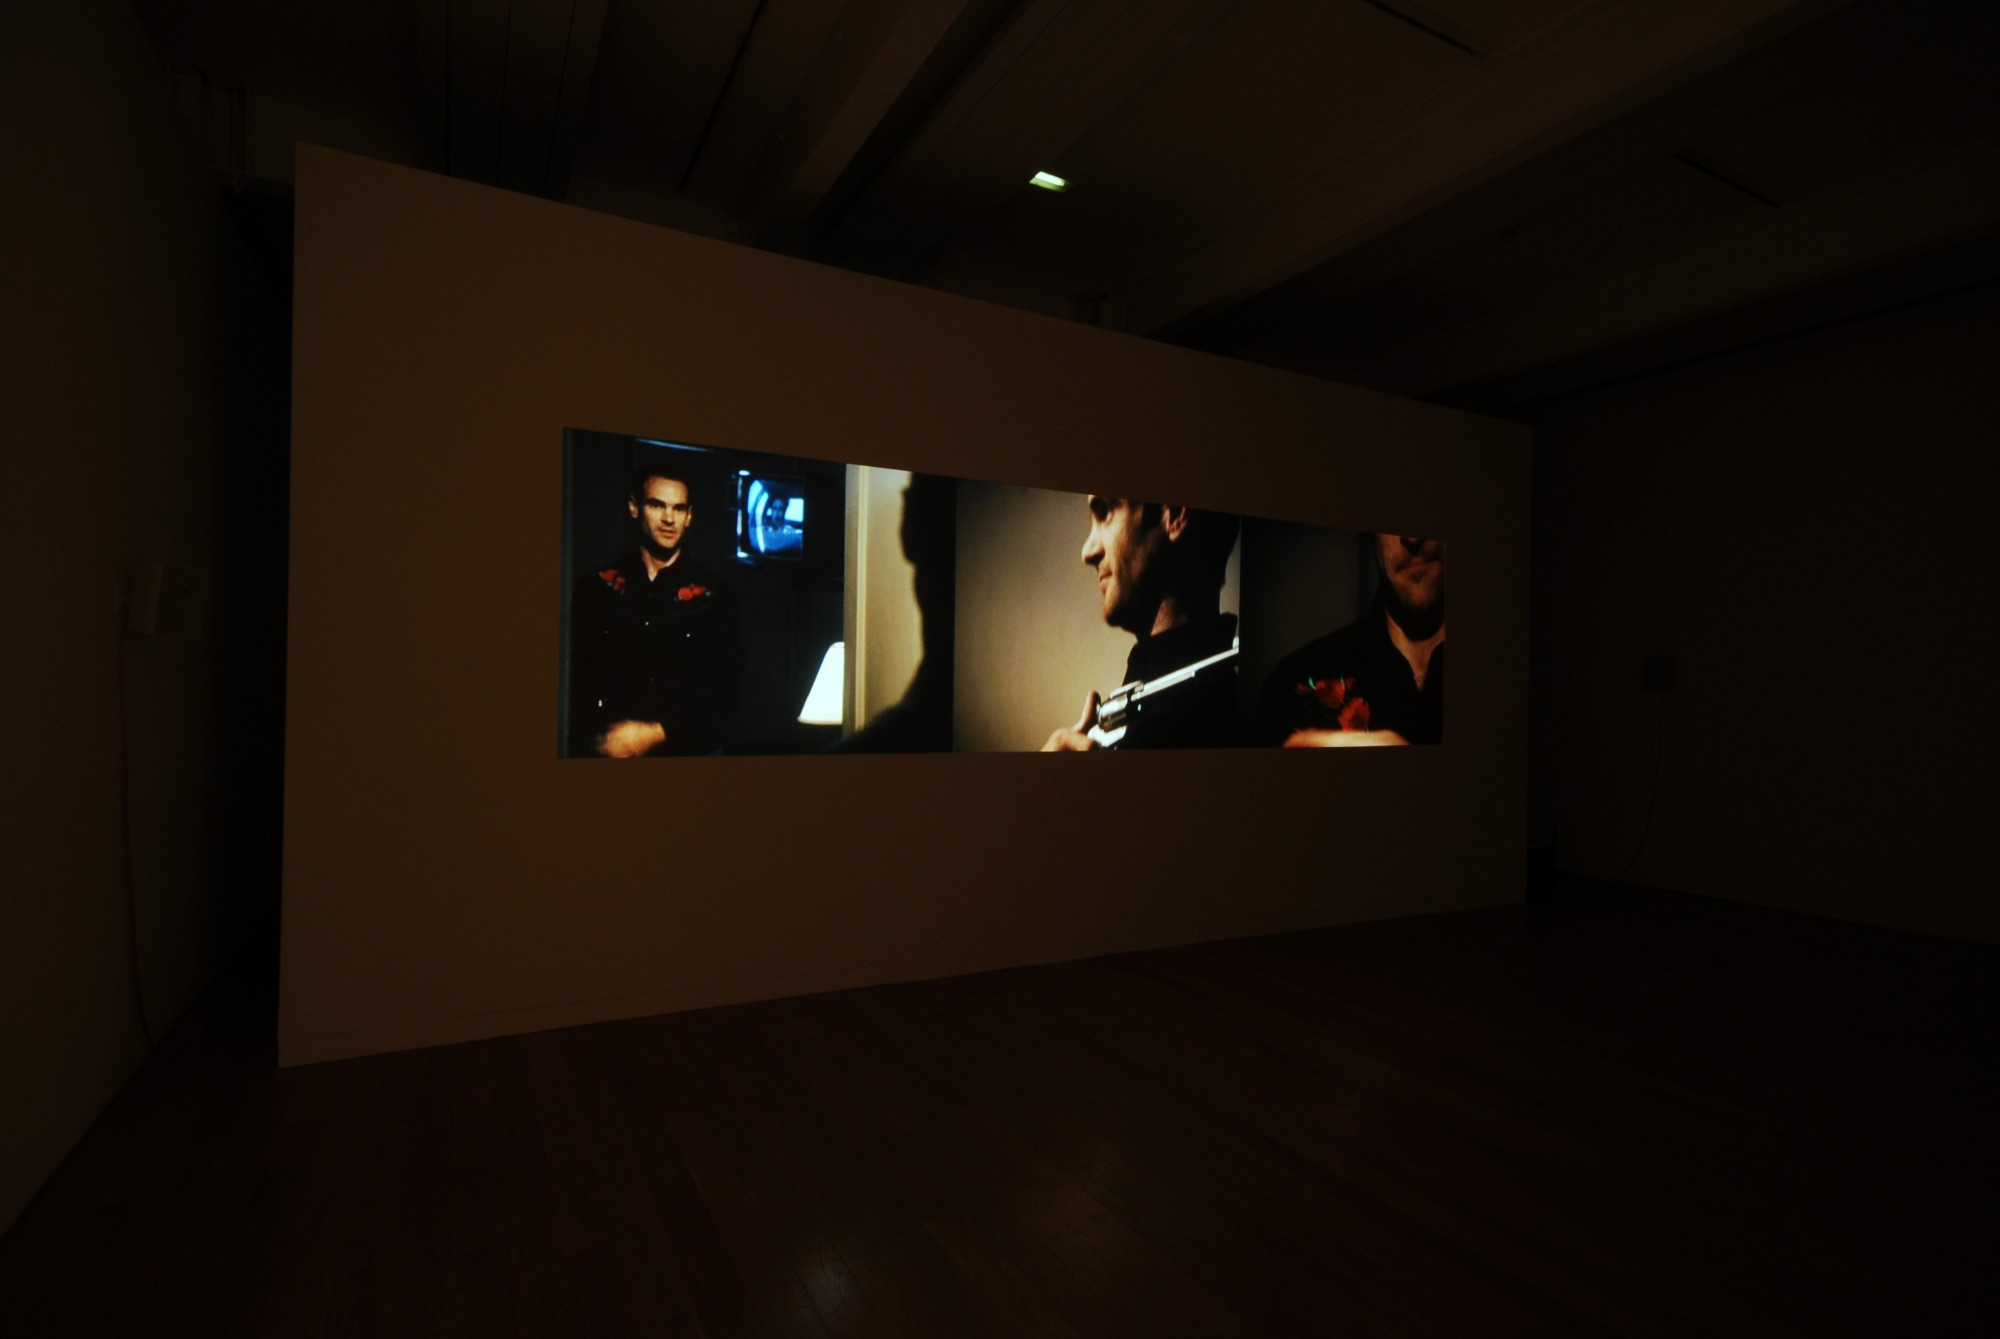 The Film Art of Isaac Julien. Museum of Contemporary Art, Sydney, 2001  18'20'', 16mm film transferred to digital, colour, stereo sound